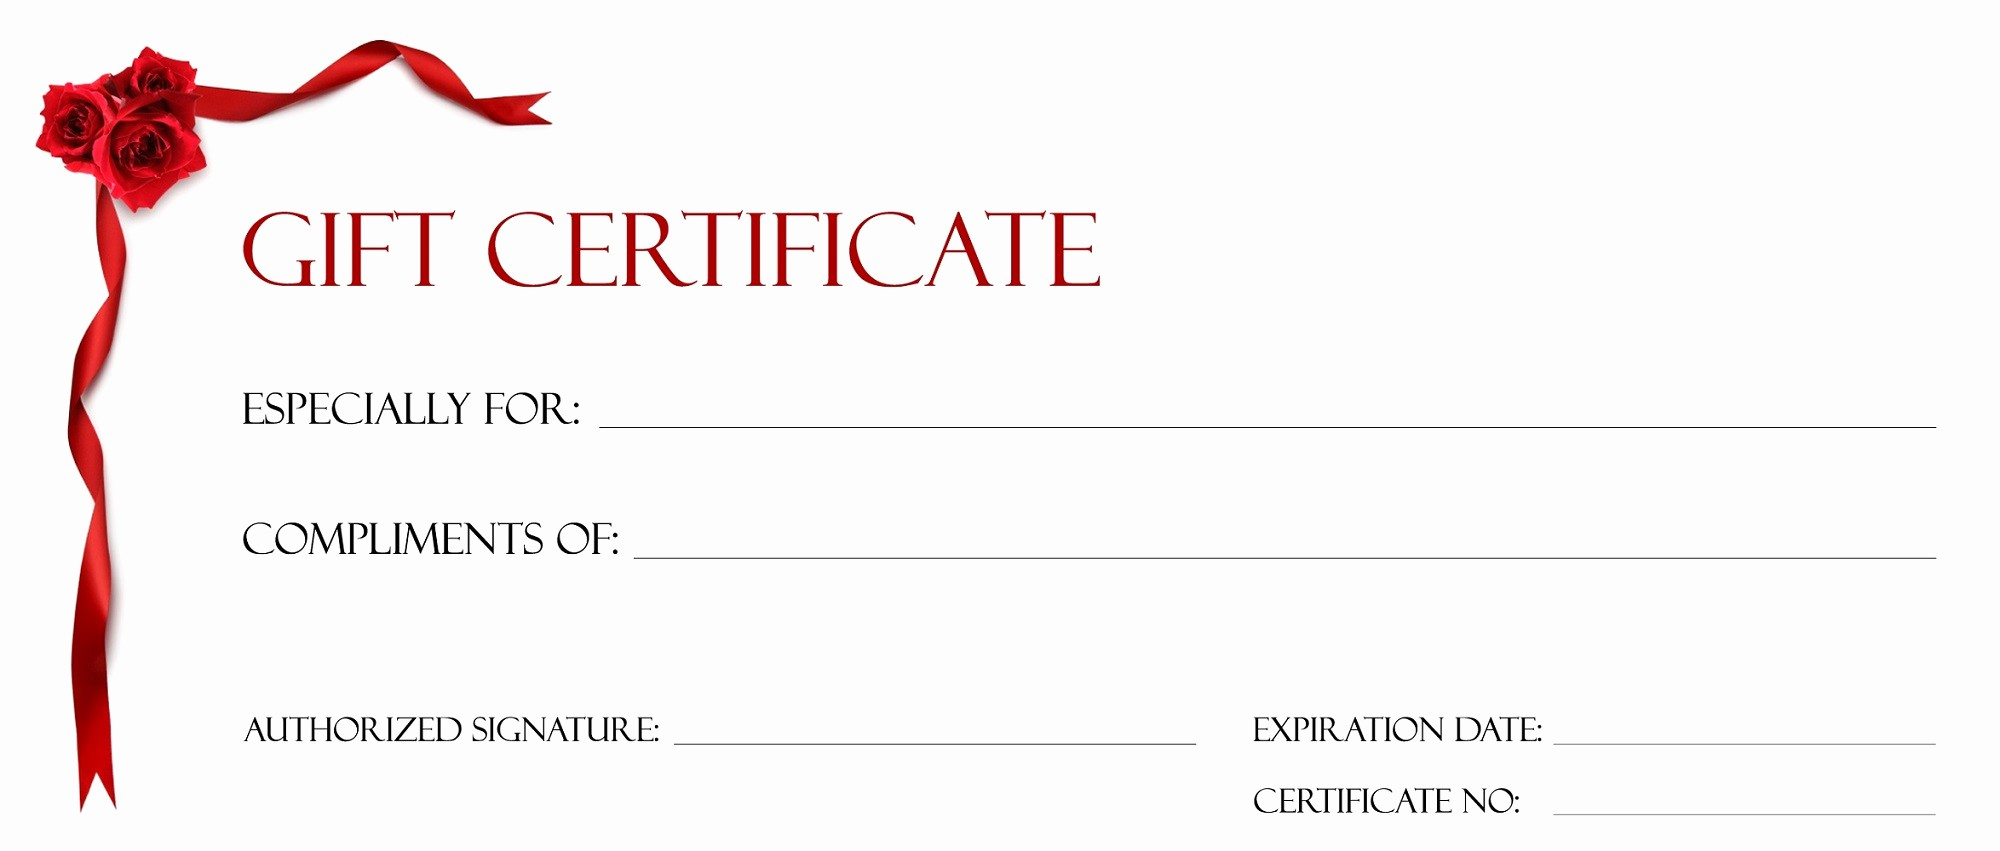 Printable Gift Certificates Online Free New Gift Certificate Template for Kids Blanks